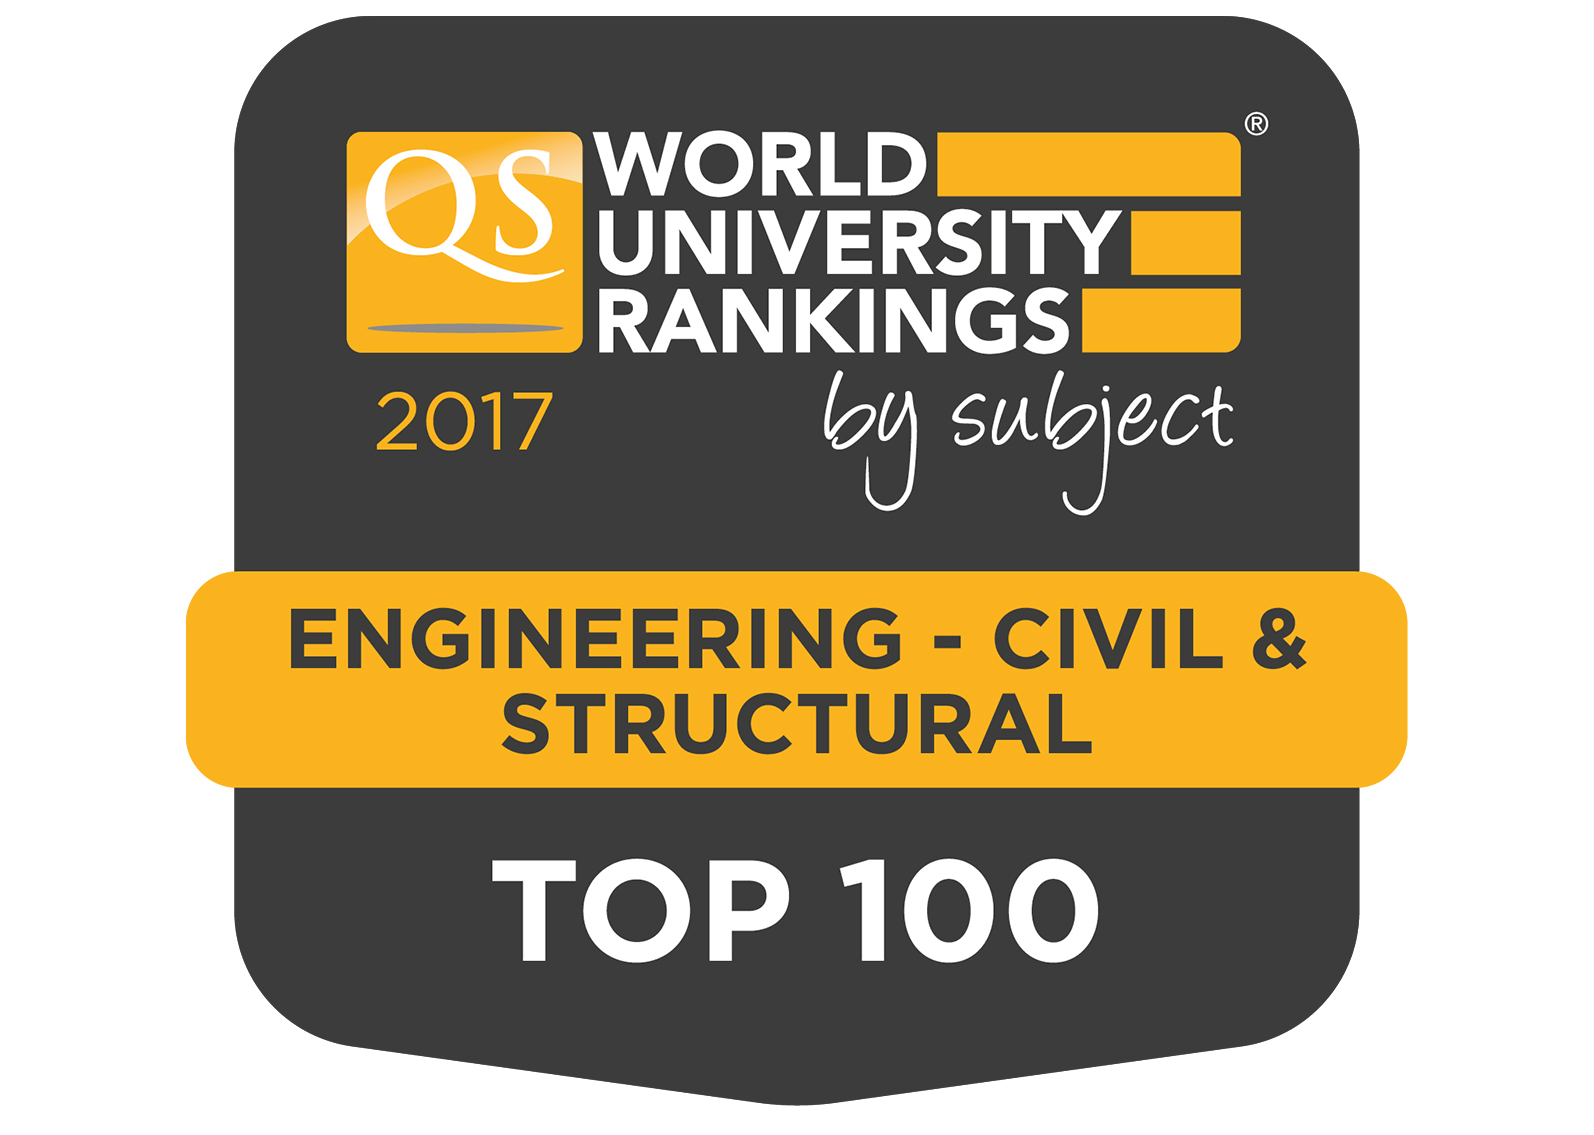 Western Sydney University has been ranked in the Top 100 Universities for Engineering - Civil and Structural